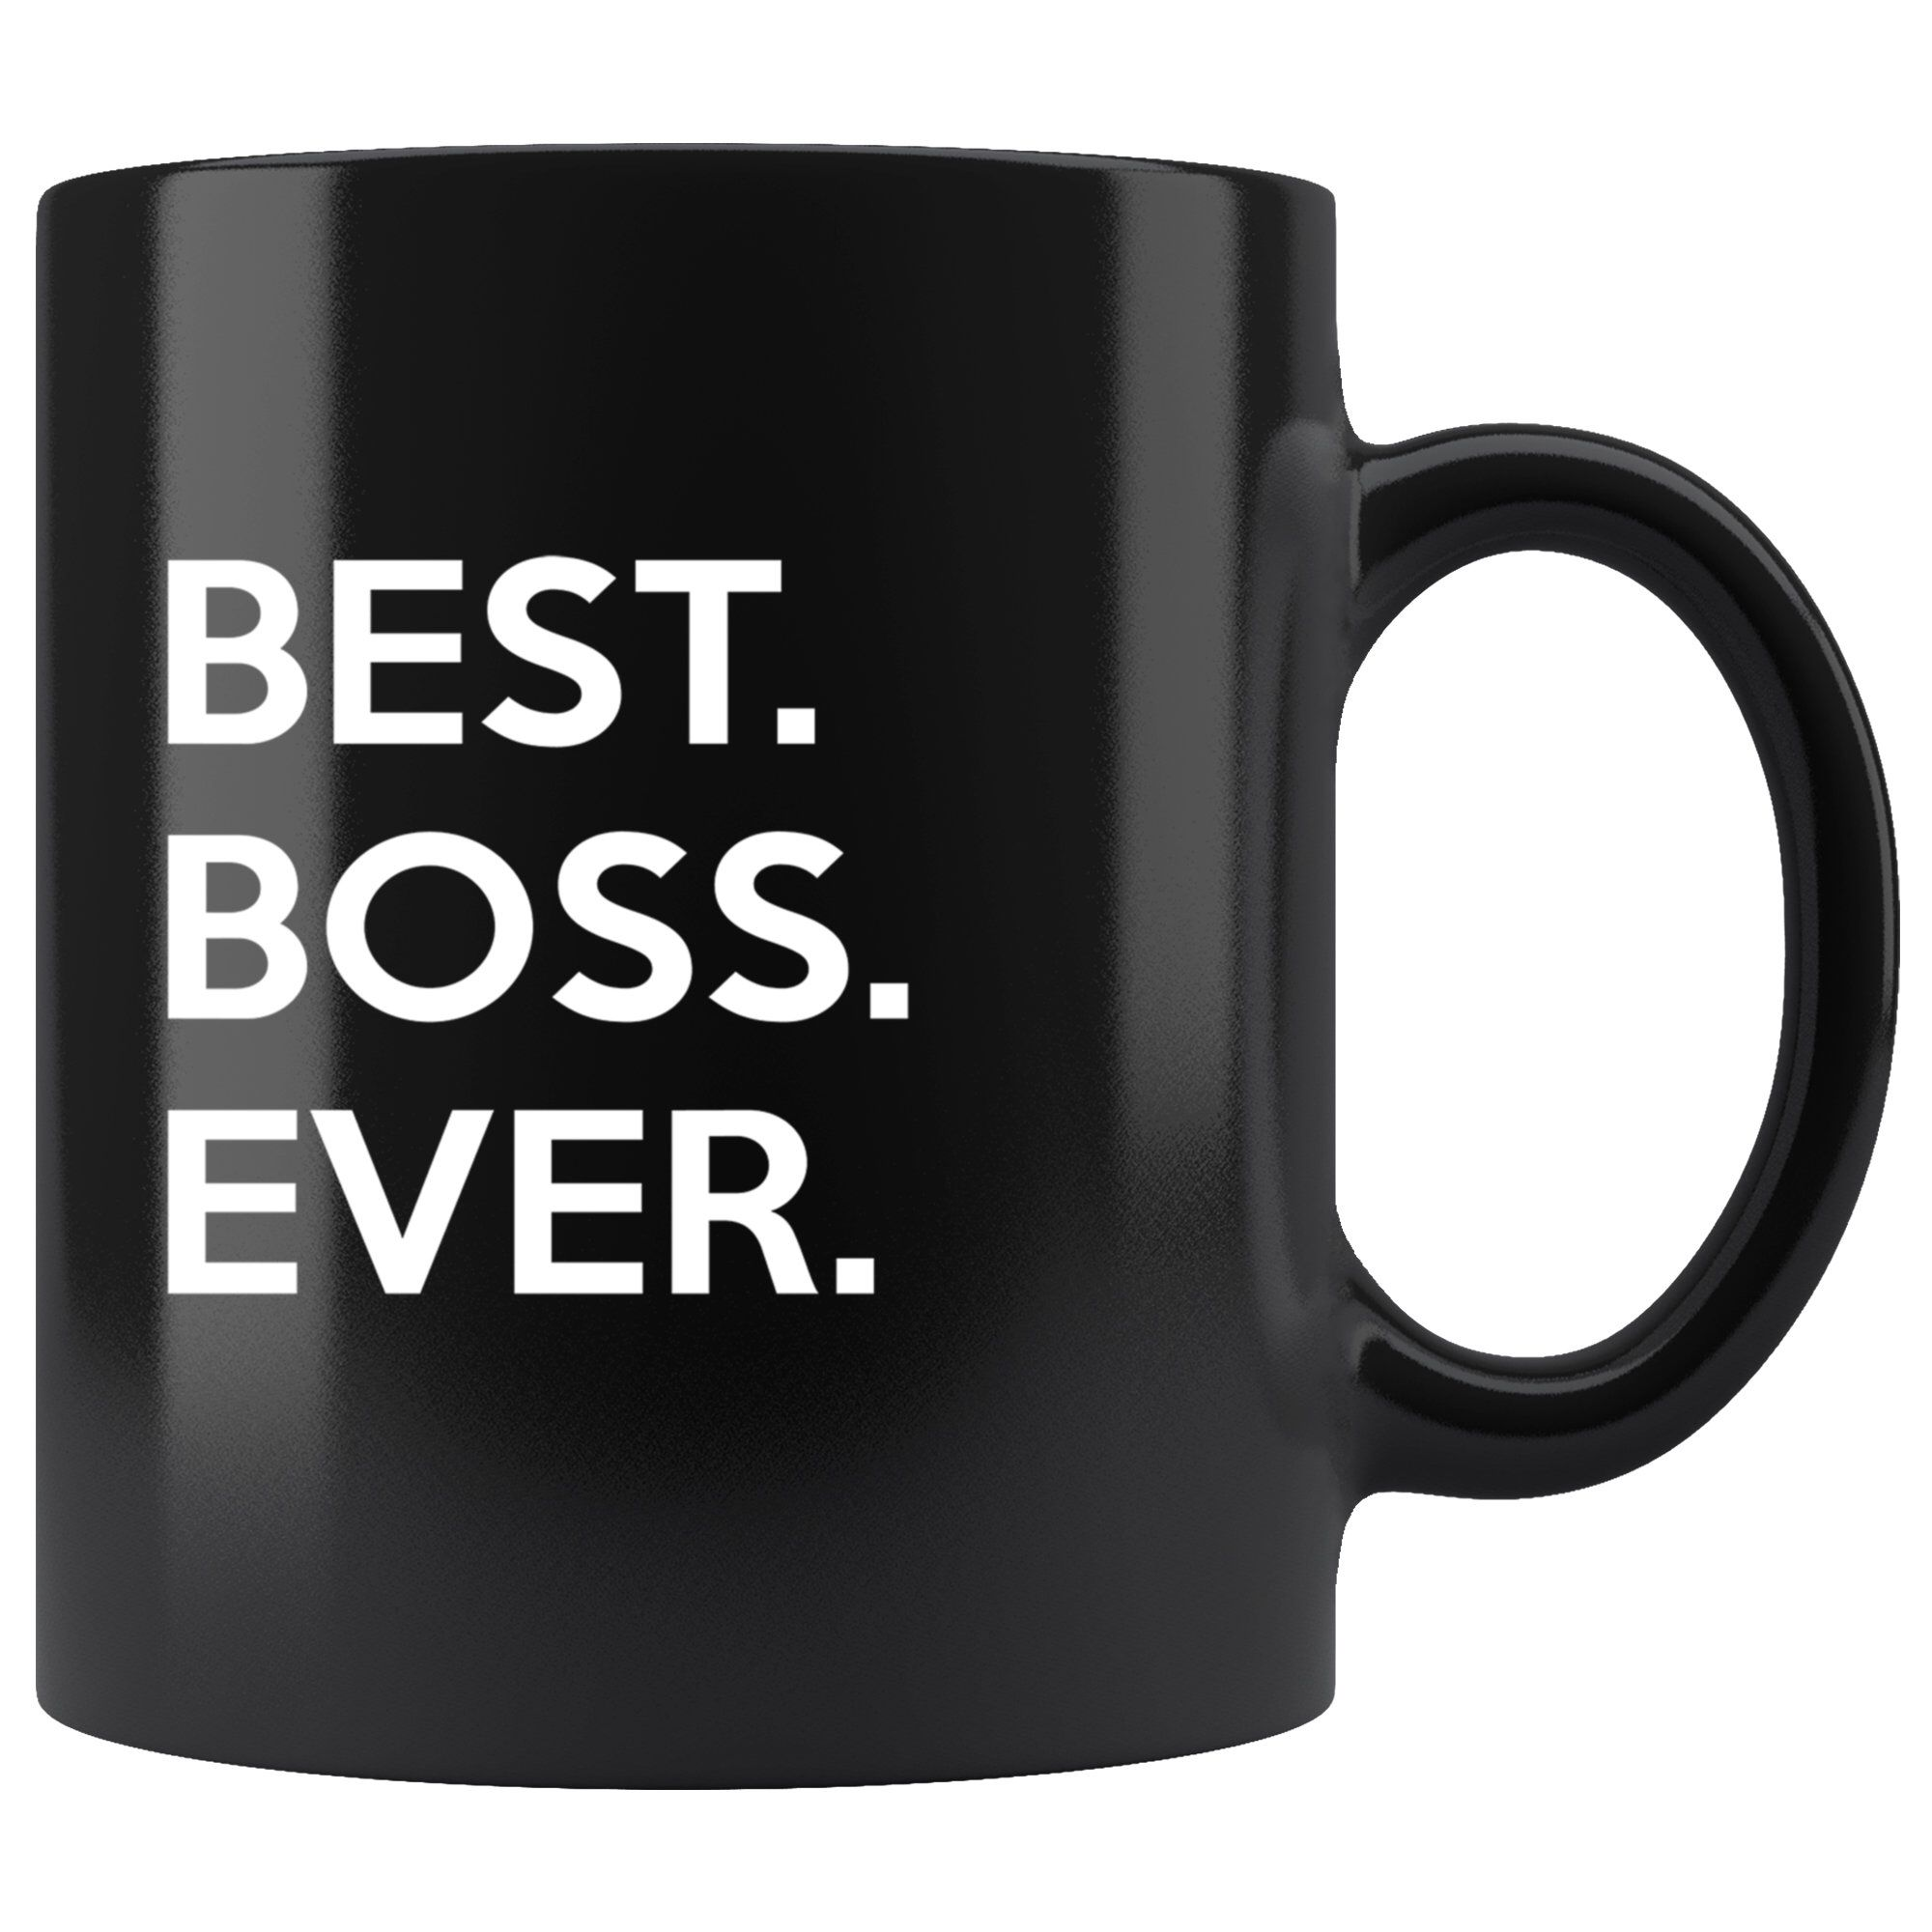 Excited to share this item from my etsy shop best boss